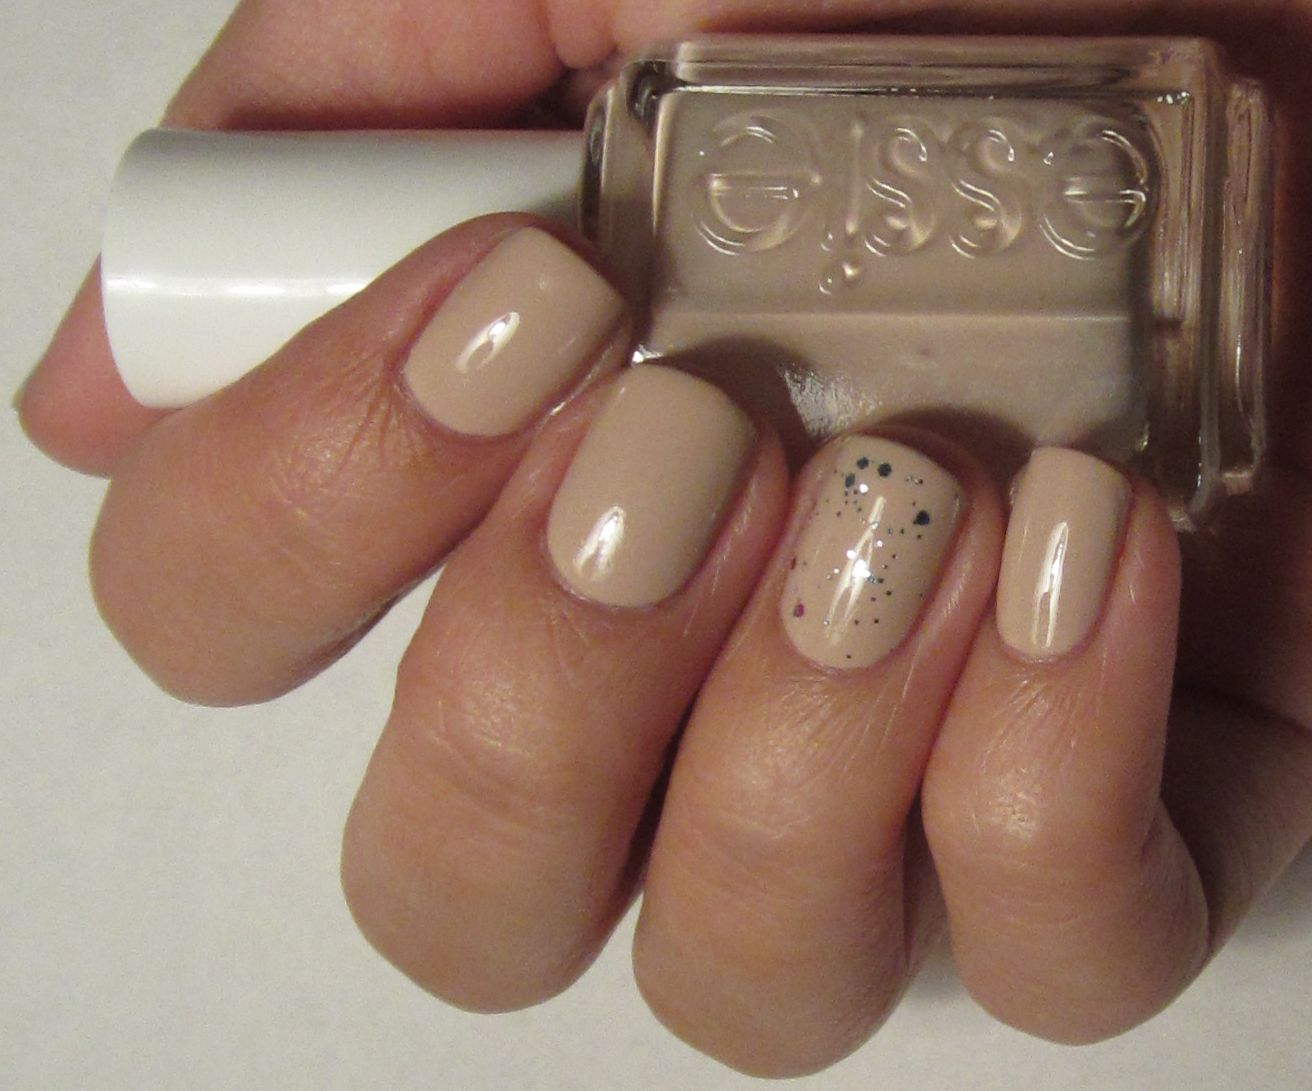 Pin by Melissa Luces on Beauty, my style! | Makeup nails